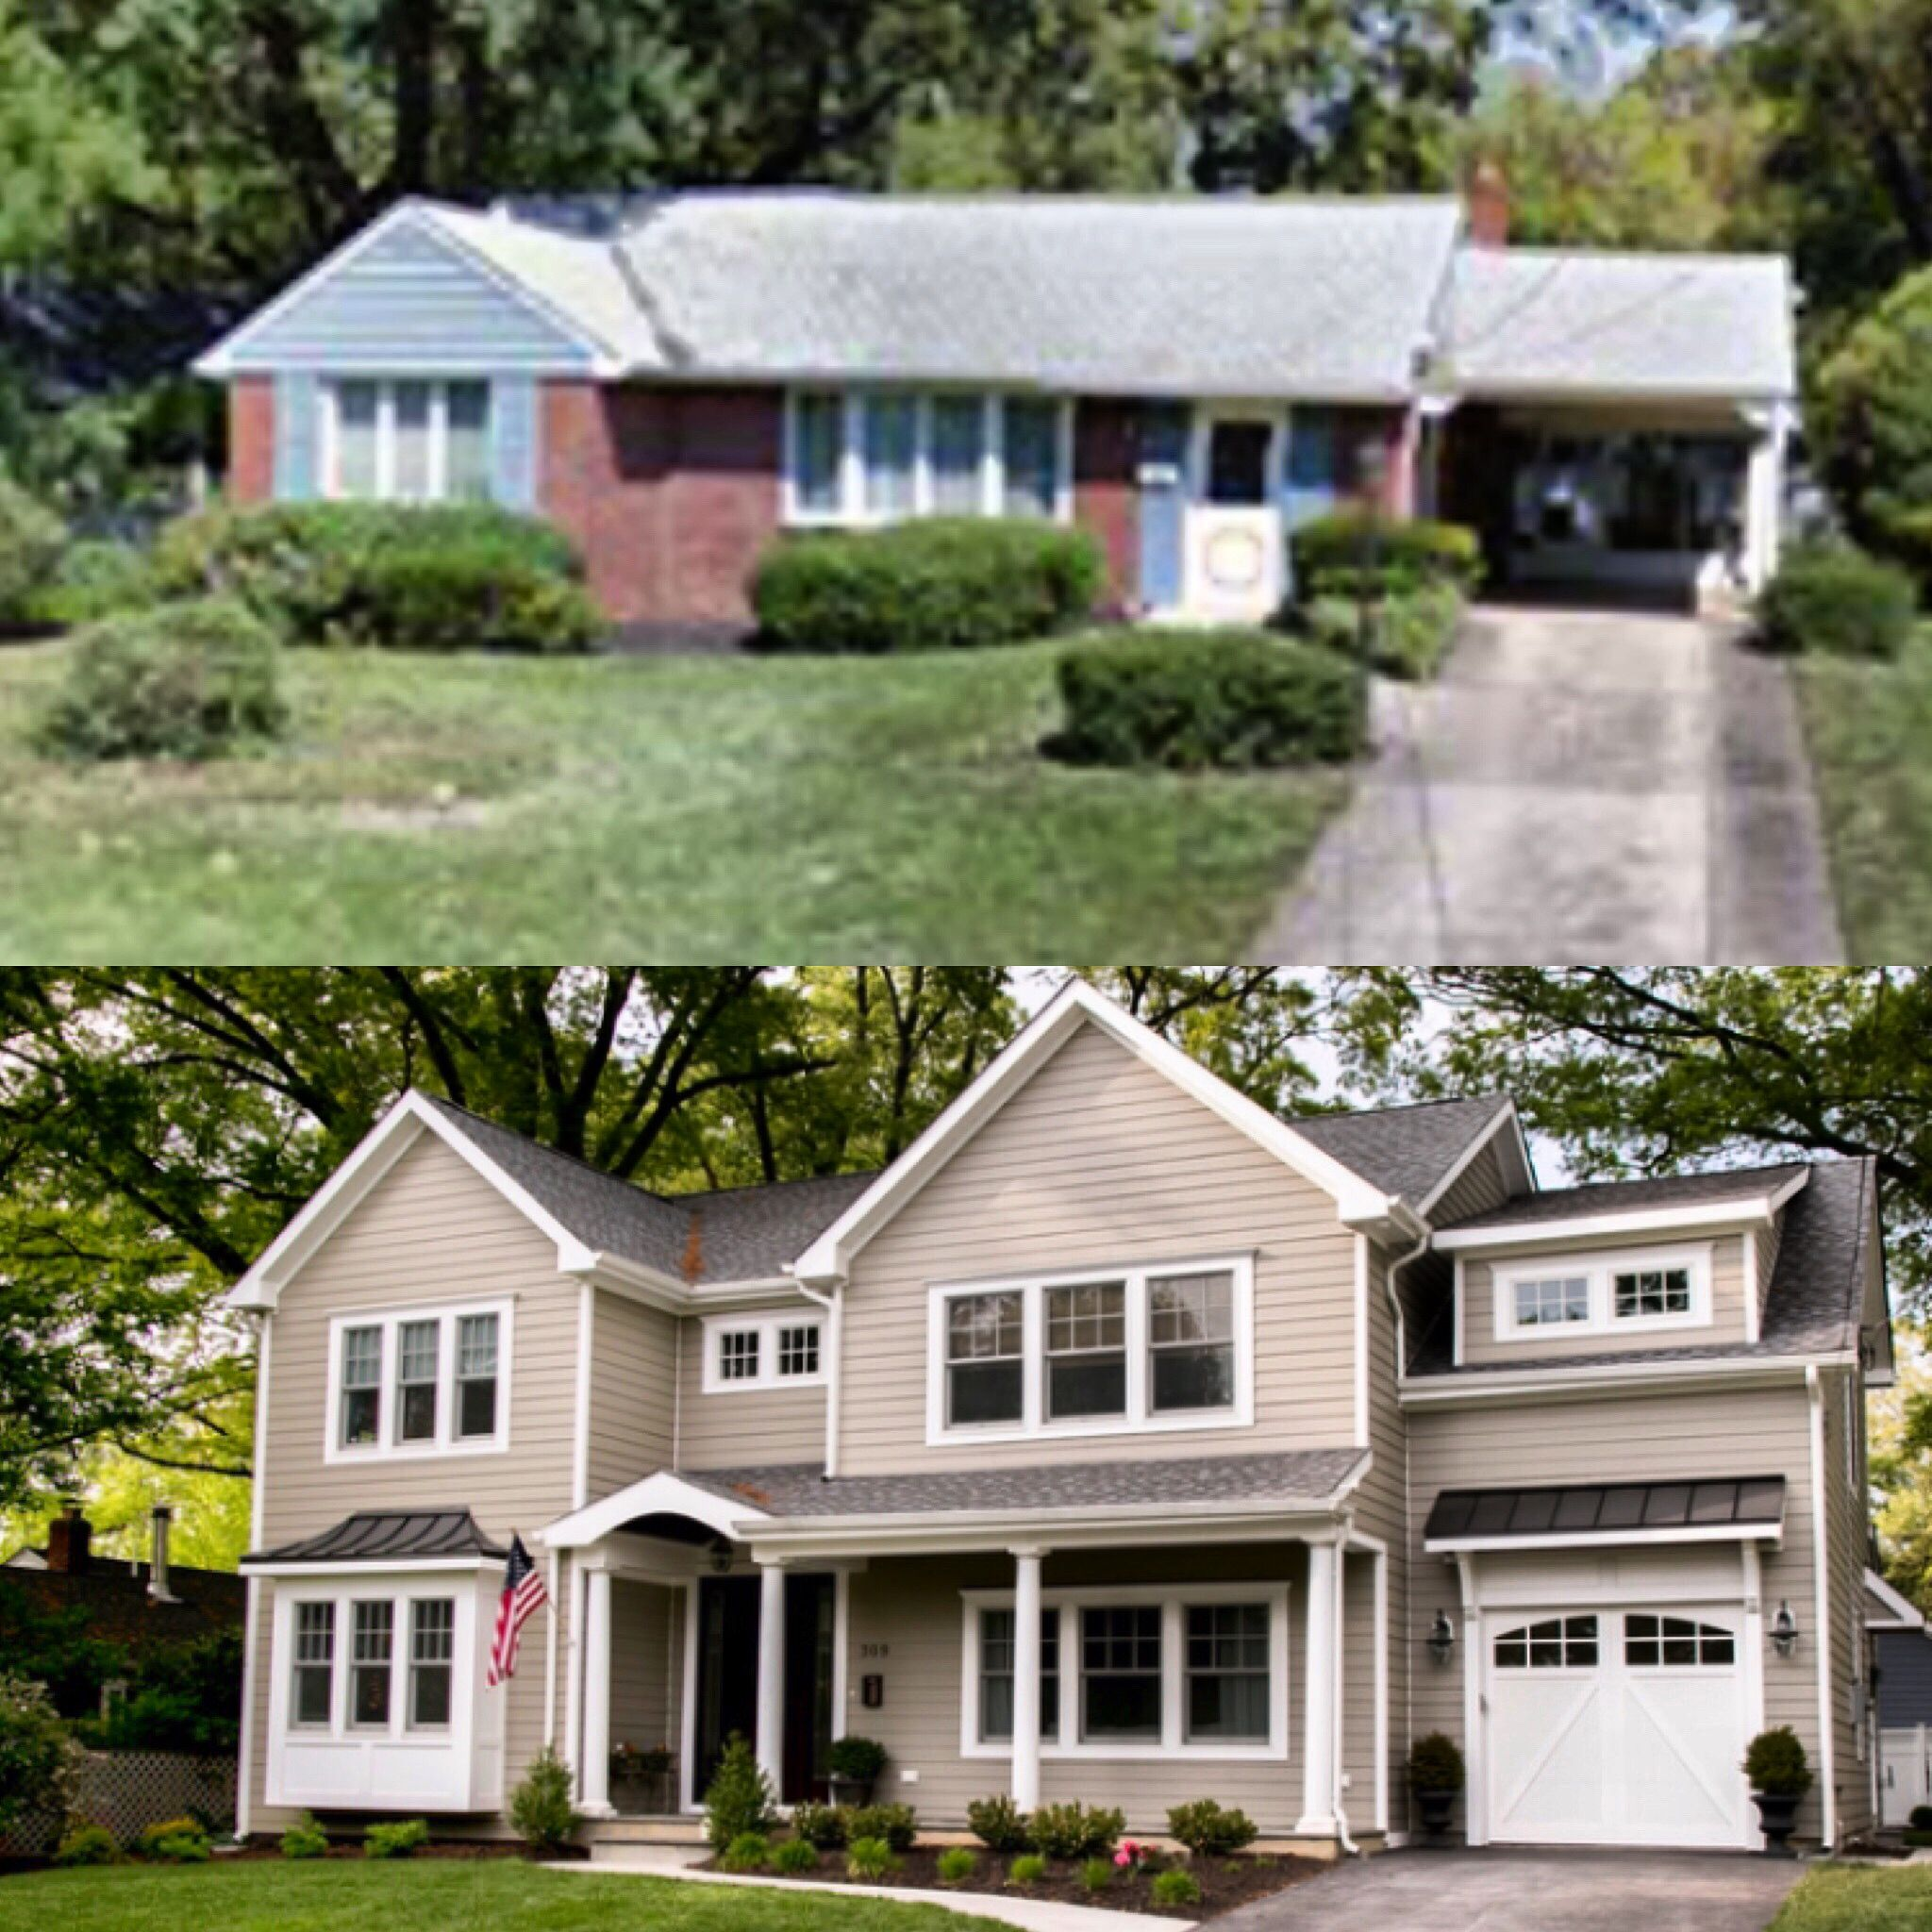 Home Addition Plans: Before And After: Second Floor Addition In 2019